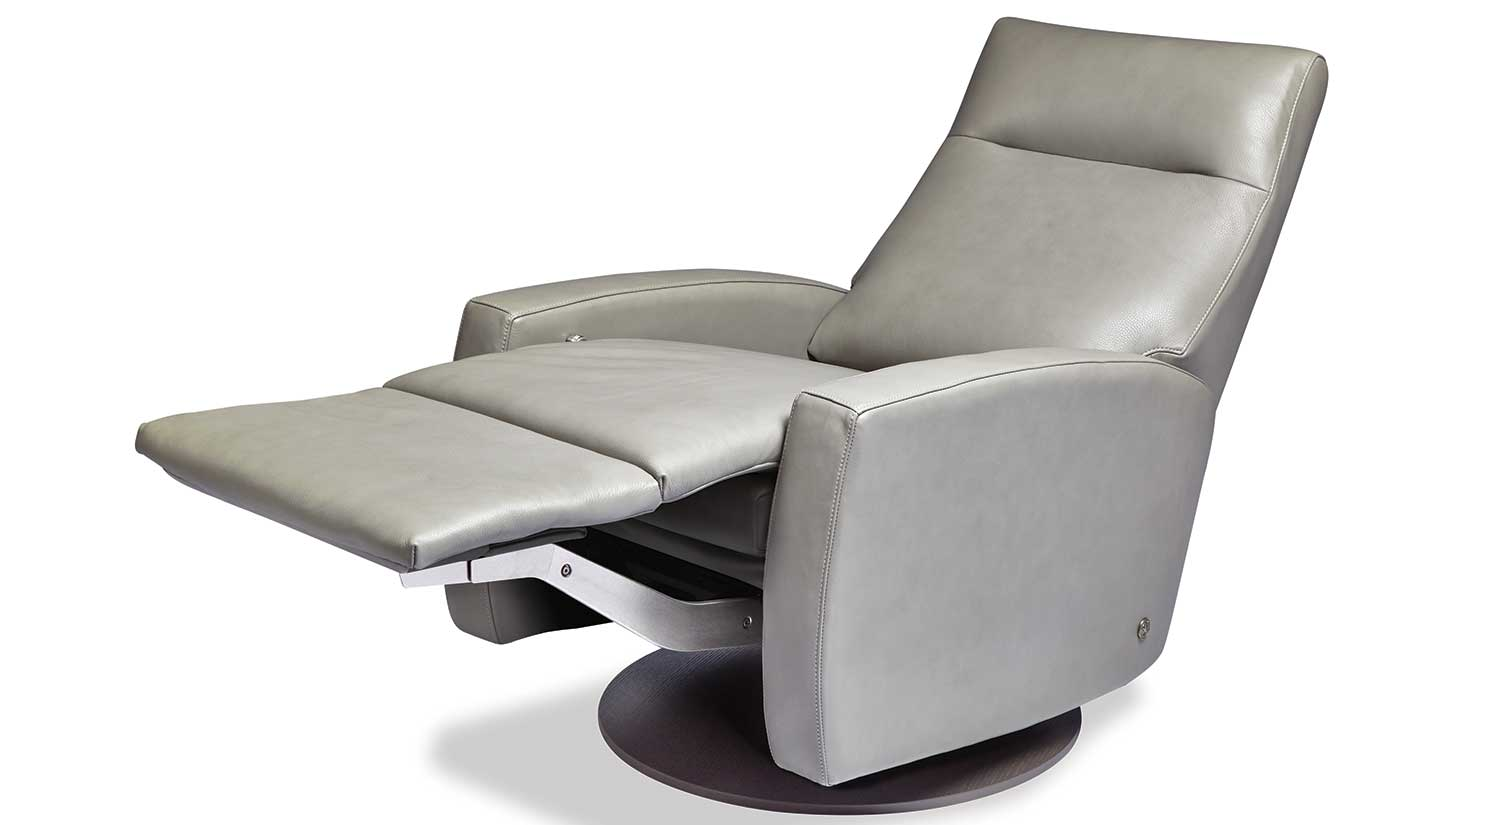 american leather chairs and recliners wholesale banquet circle furniture eva comfort recliner